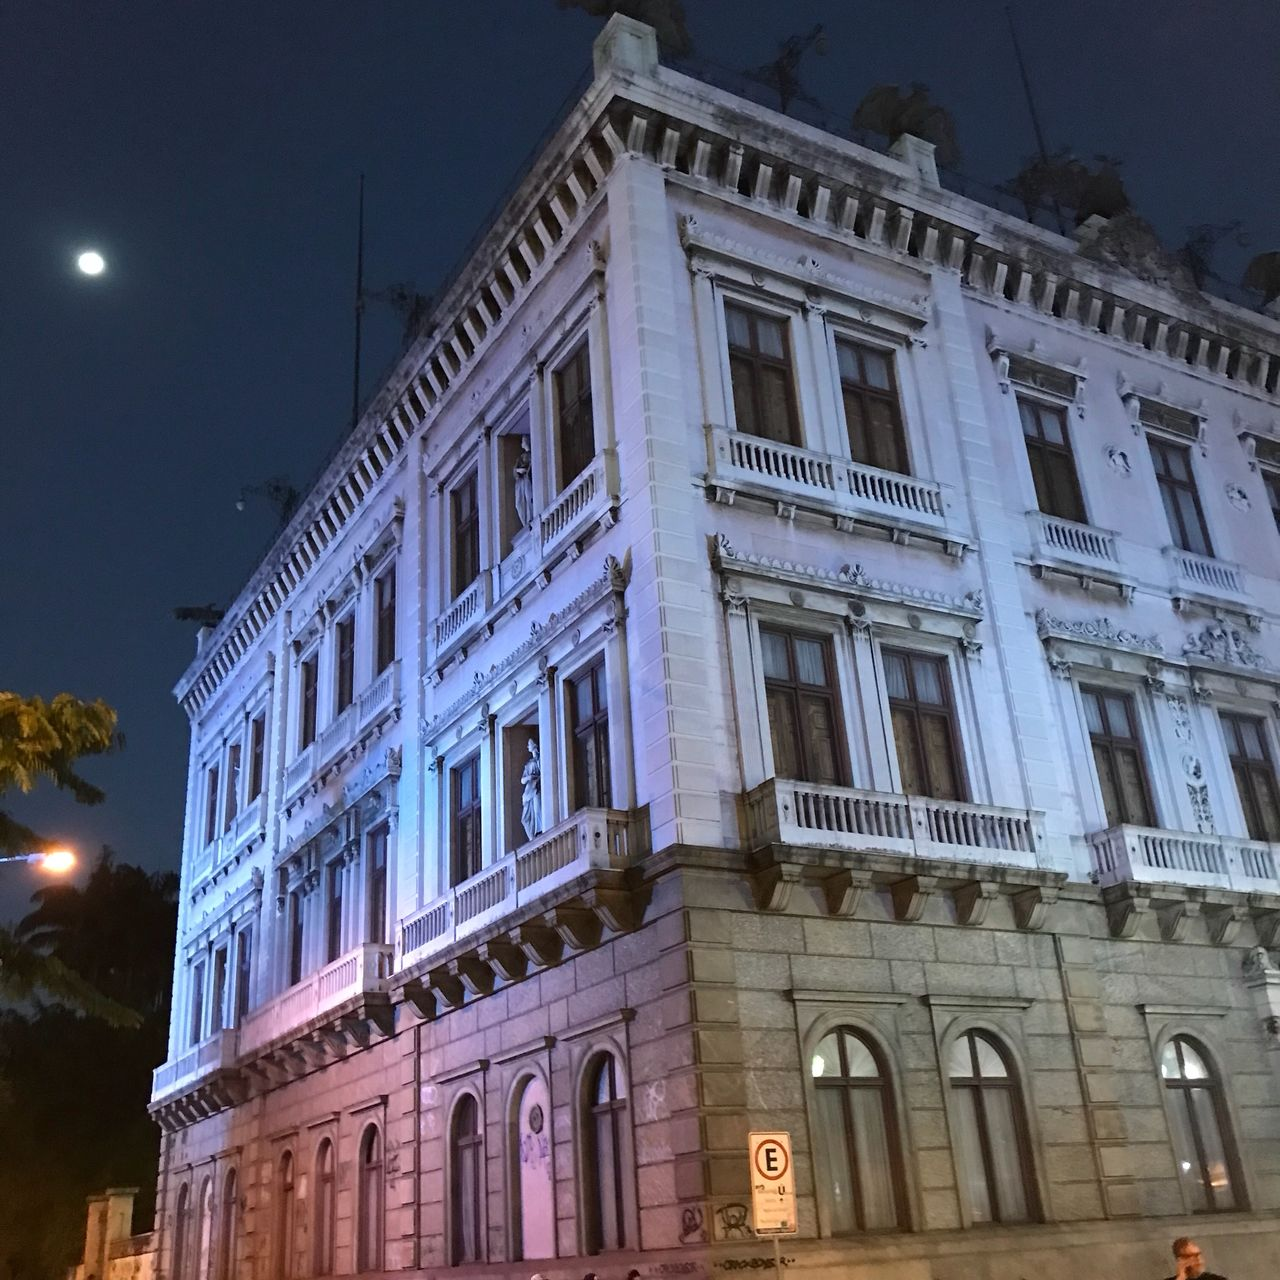 building exterior, architecture, built structure, building, illuminated, night, window, no people, city, low angle view, sky, street, outdoors, street light, nature, history, dusk, the past, moon, lighting equipment